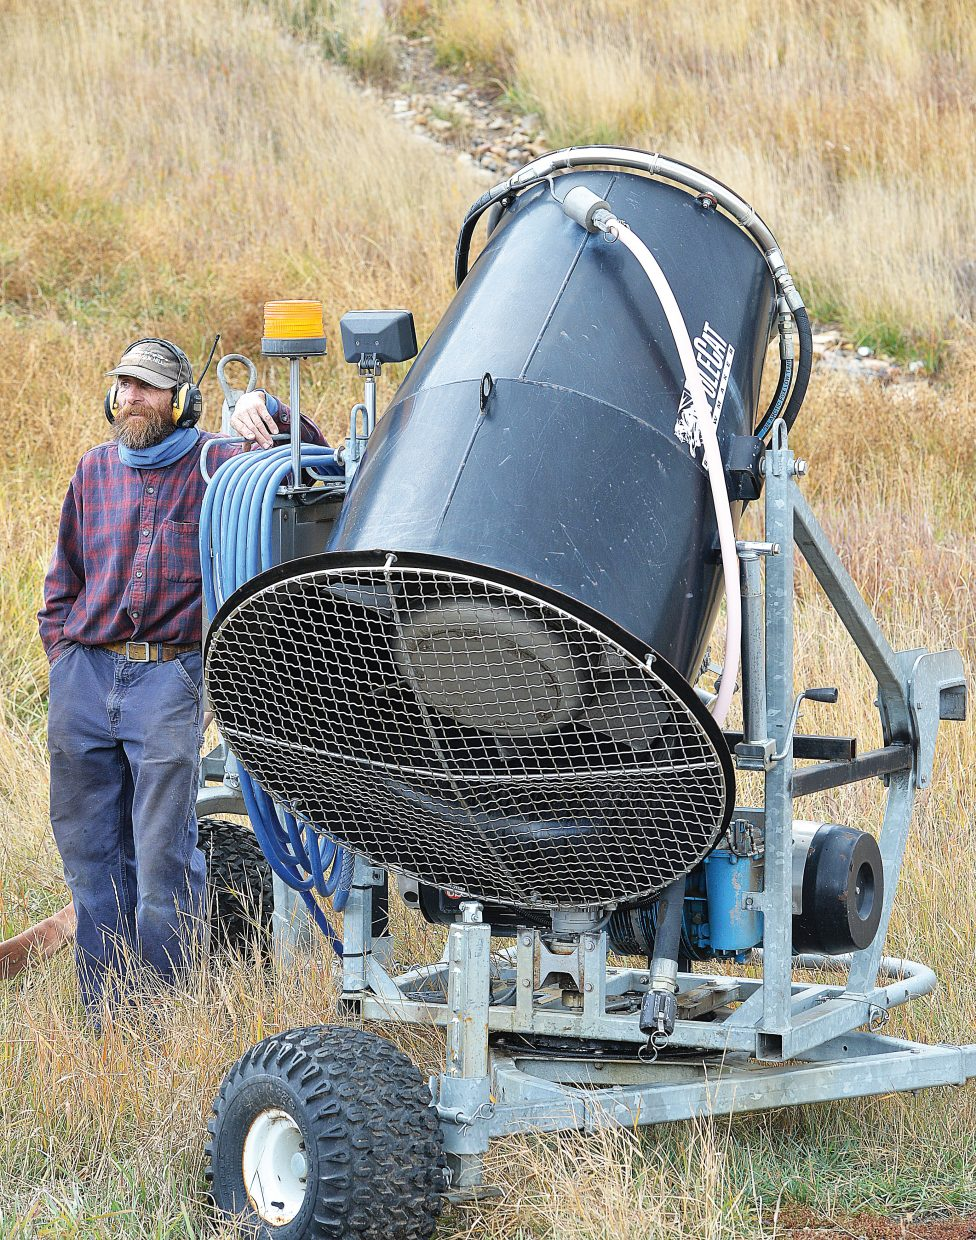 Longtime Steamboat Springs resident Bill Beauregard is ready to get the snowmaking operations at Howelsen Hill rolling. On Monday, he was helping with a safety training meeting and said that if temperatures cooperate, snowmaking may begin as early as Nov. 1 at the downtown ski area. Snowmaking began Tuesday on the slopes of Mount Werner at Steamboat Ski Area.